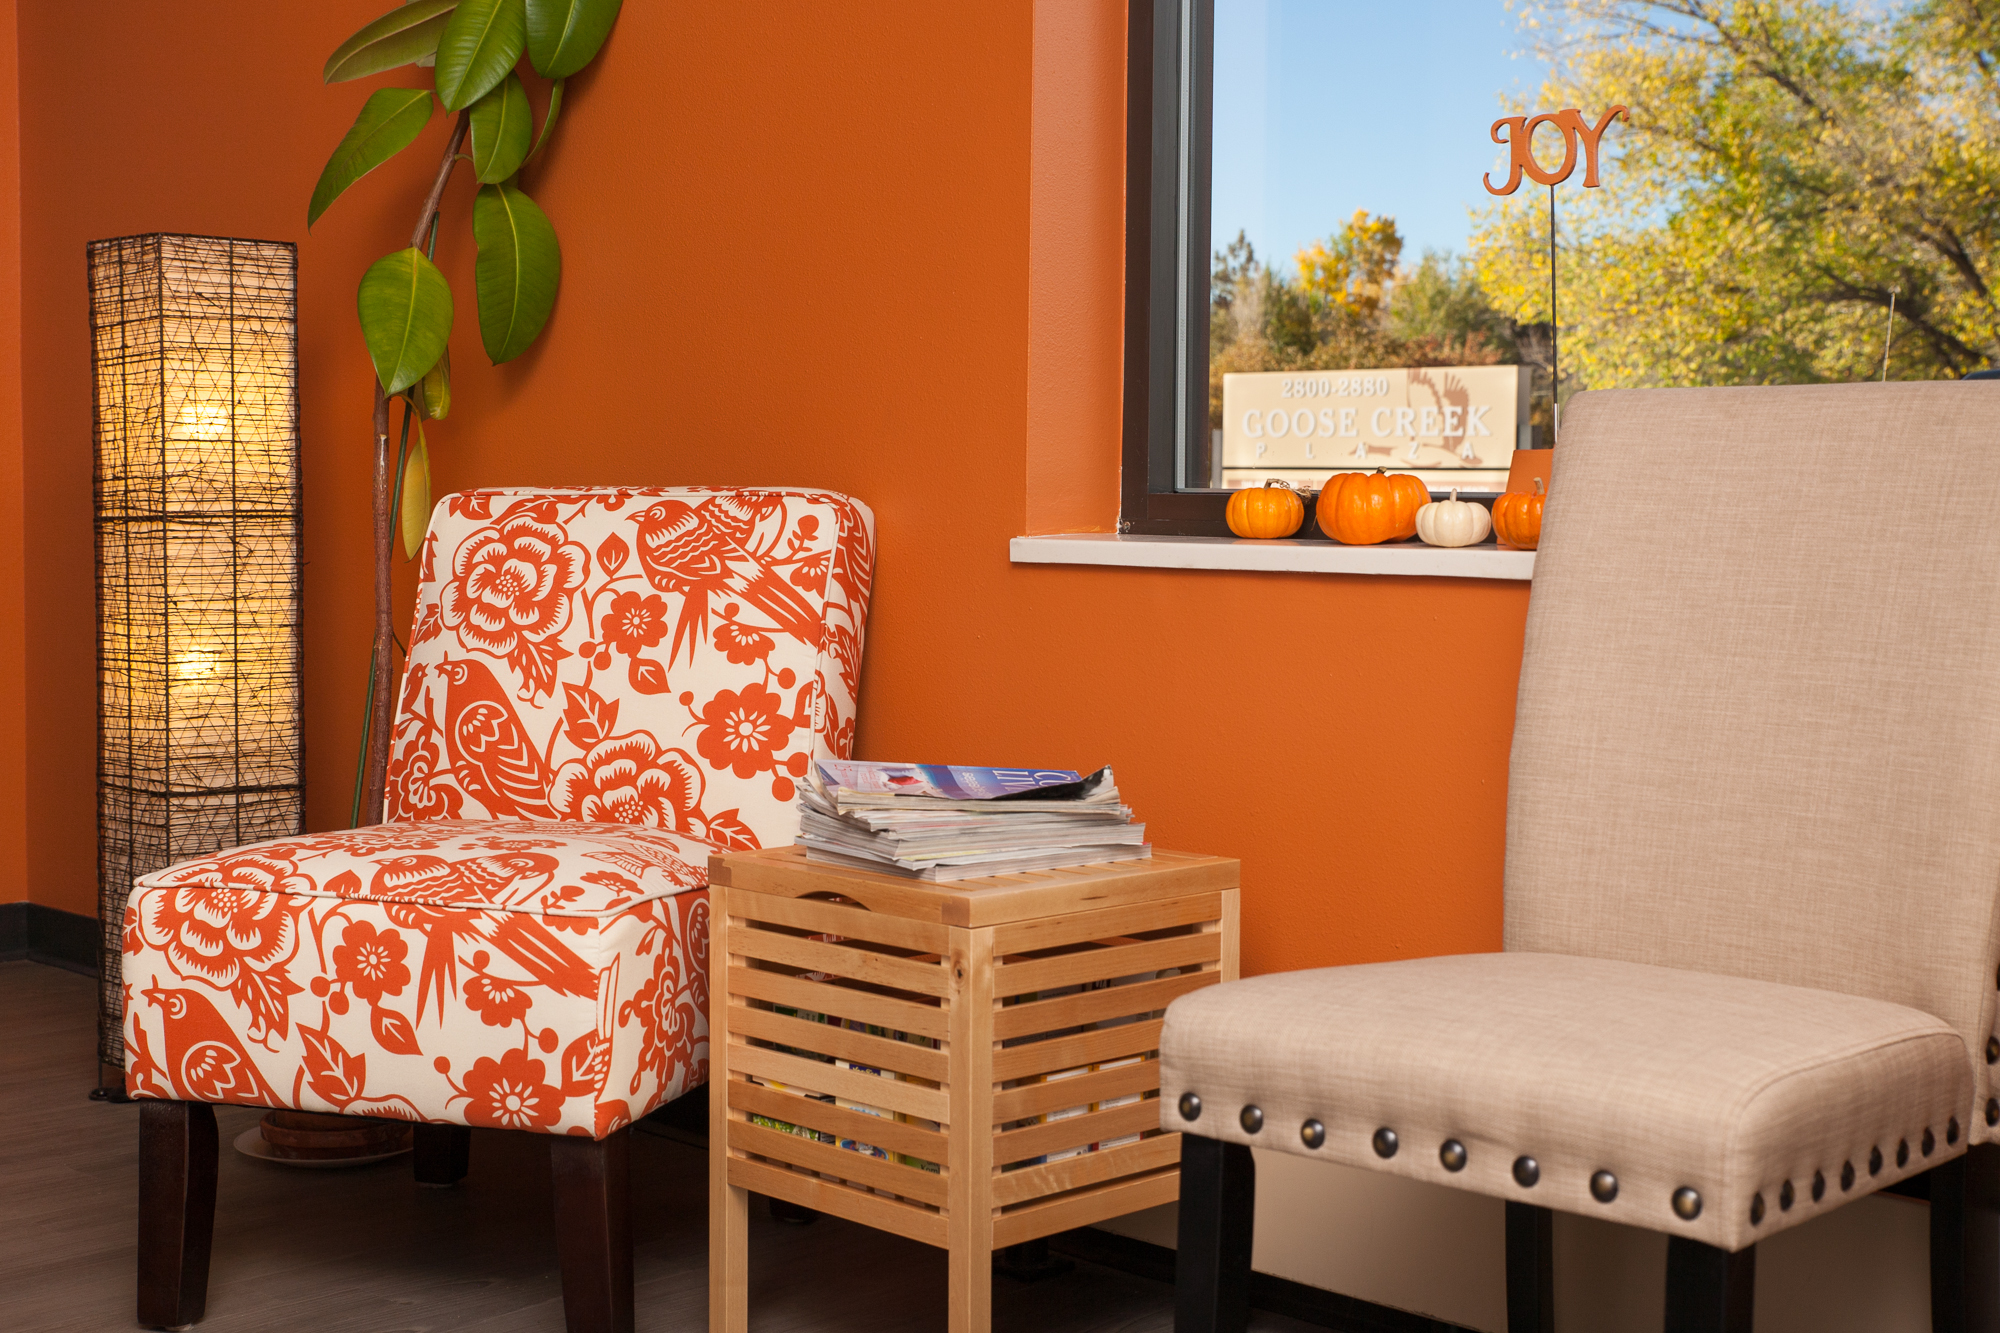 Waiting room at JOY Collective office. Enjoy a walk on the nearby Goose Creek Path before or after sessions!